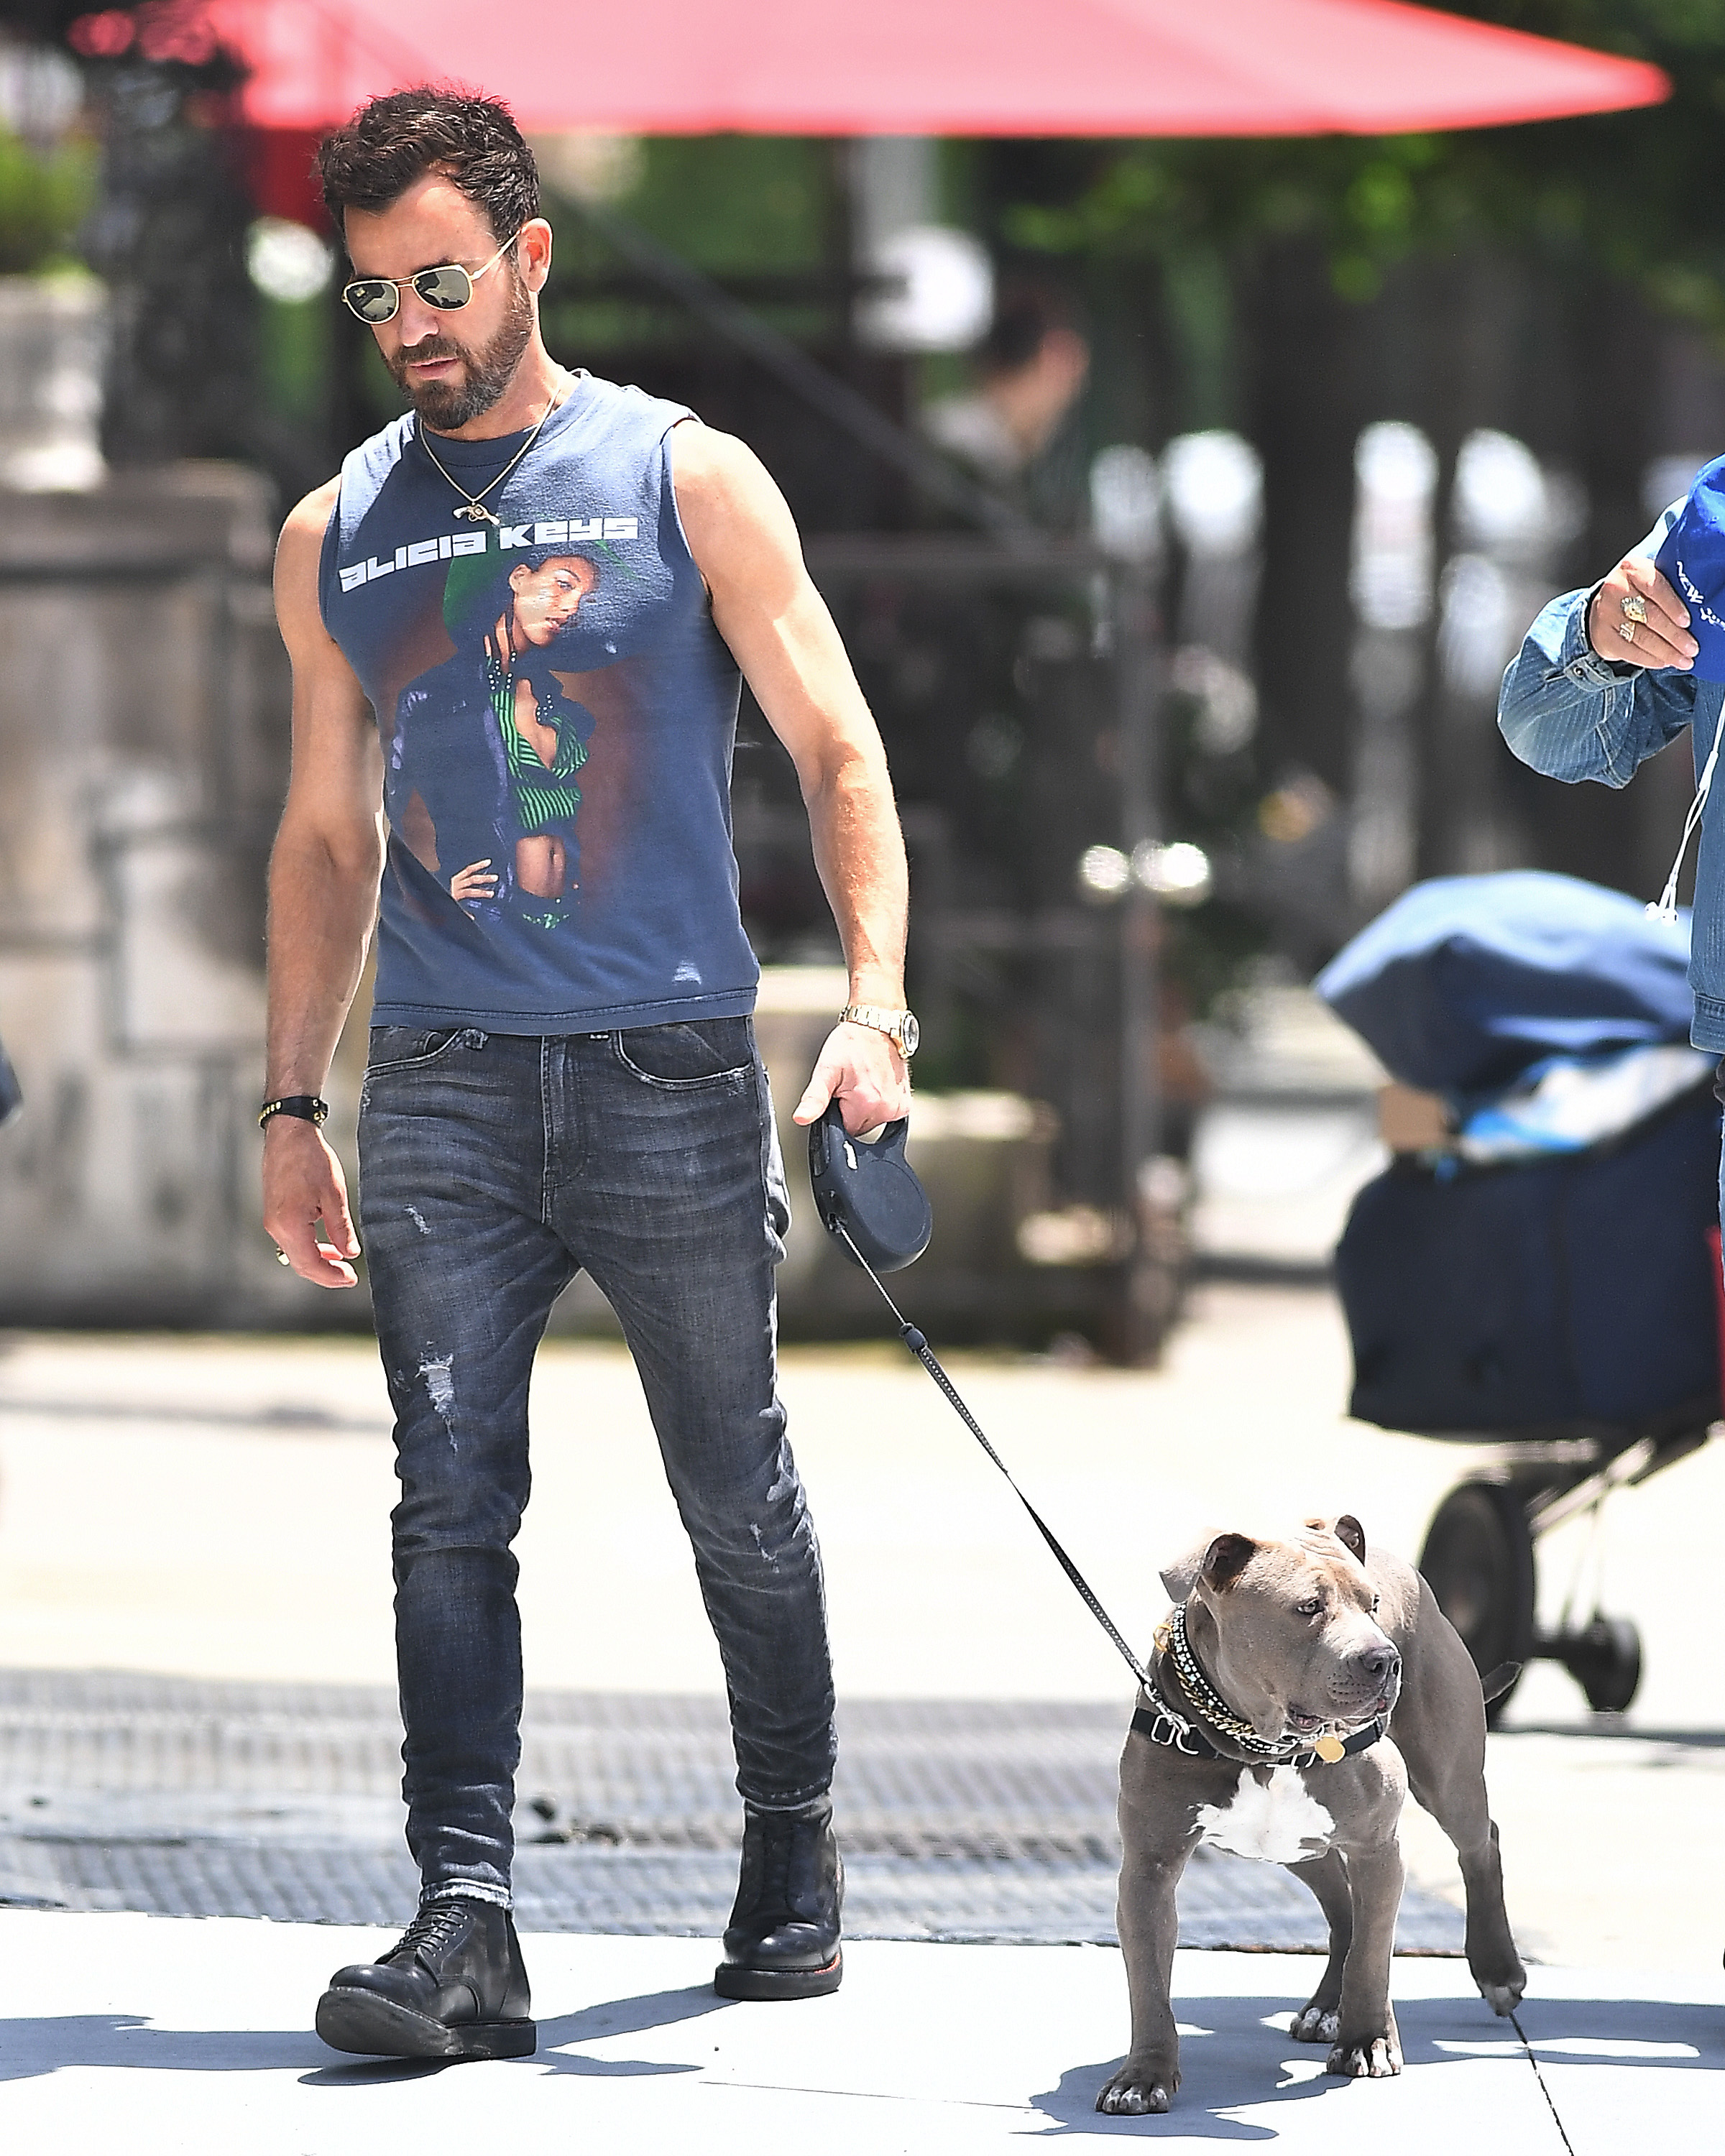 Justin Theroux showed off his impressive guns while taking his rescue dog for a walk in New York City on June 12, 2019.